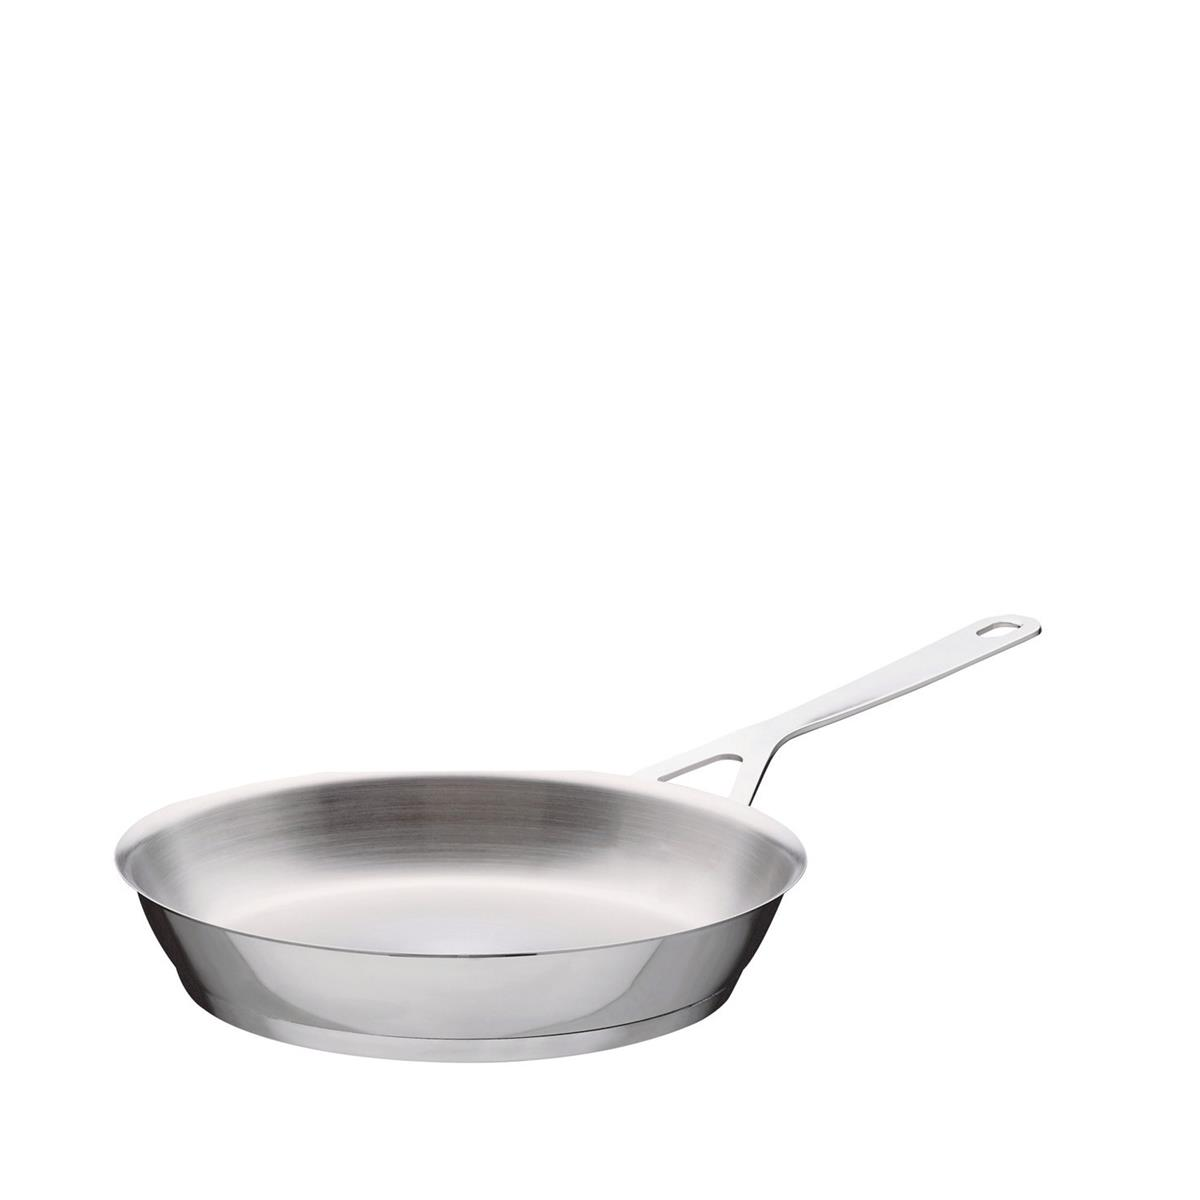 Alessi-Pots & Pans Frying pan with long handle in 18/10 stainless steel mirror polished